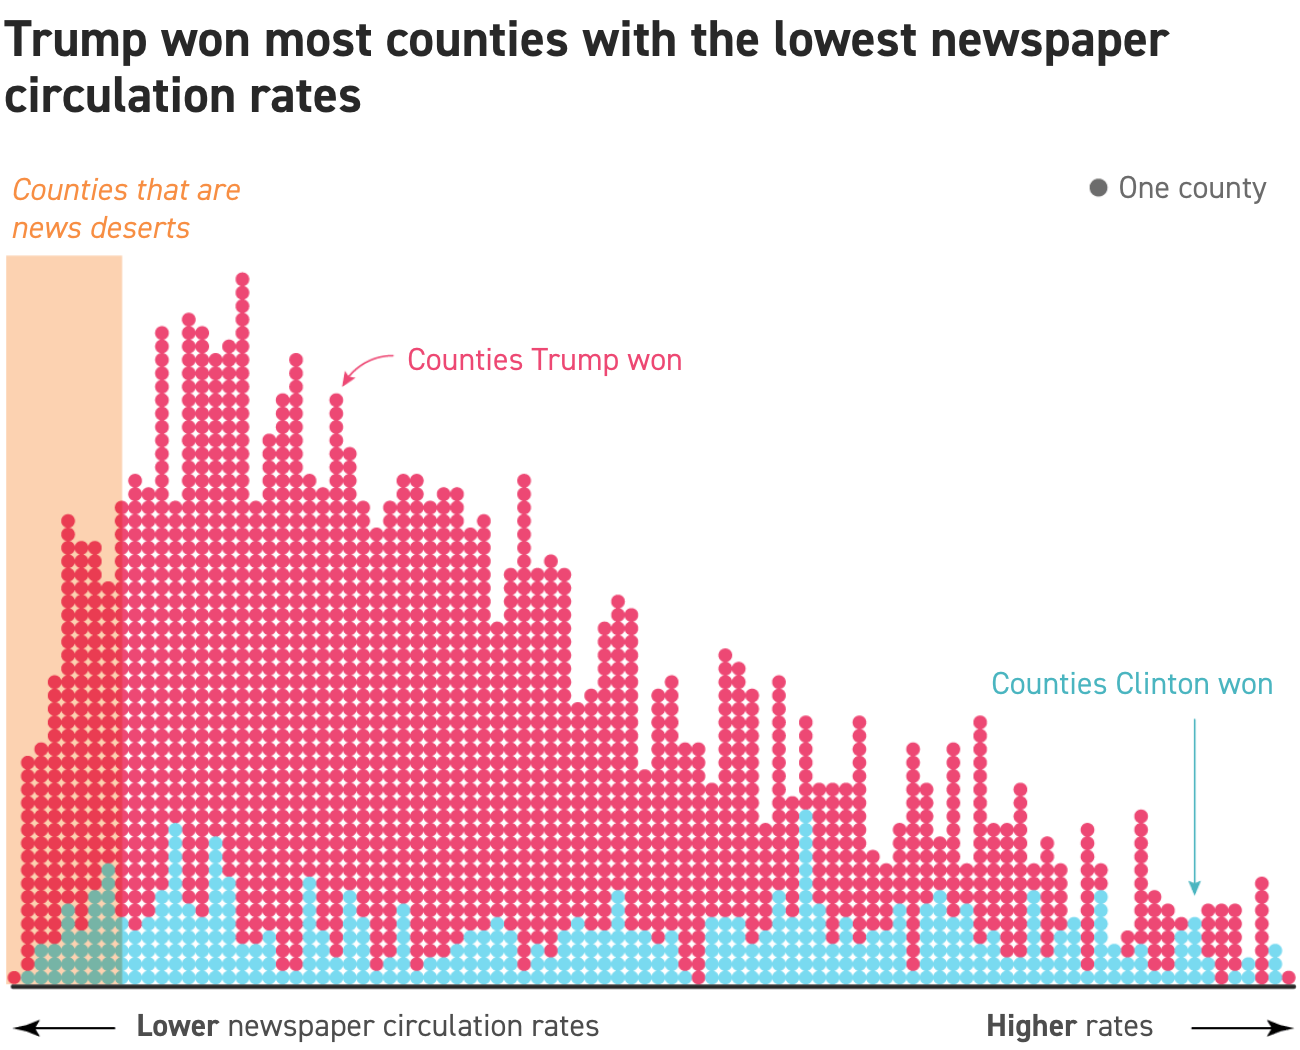 How the news deserts performed